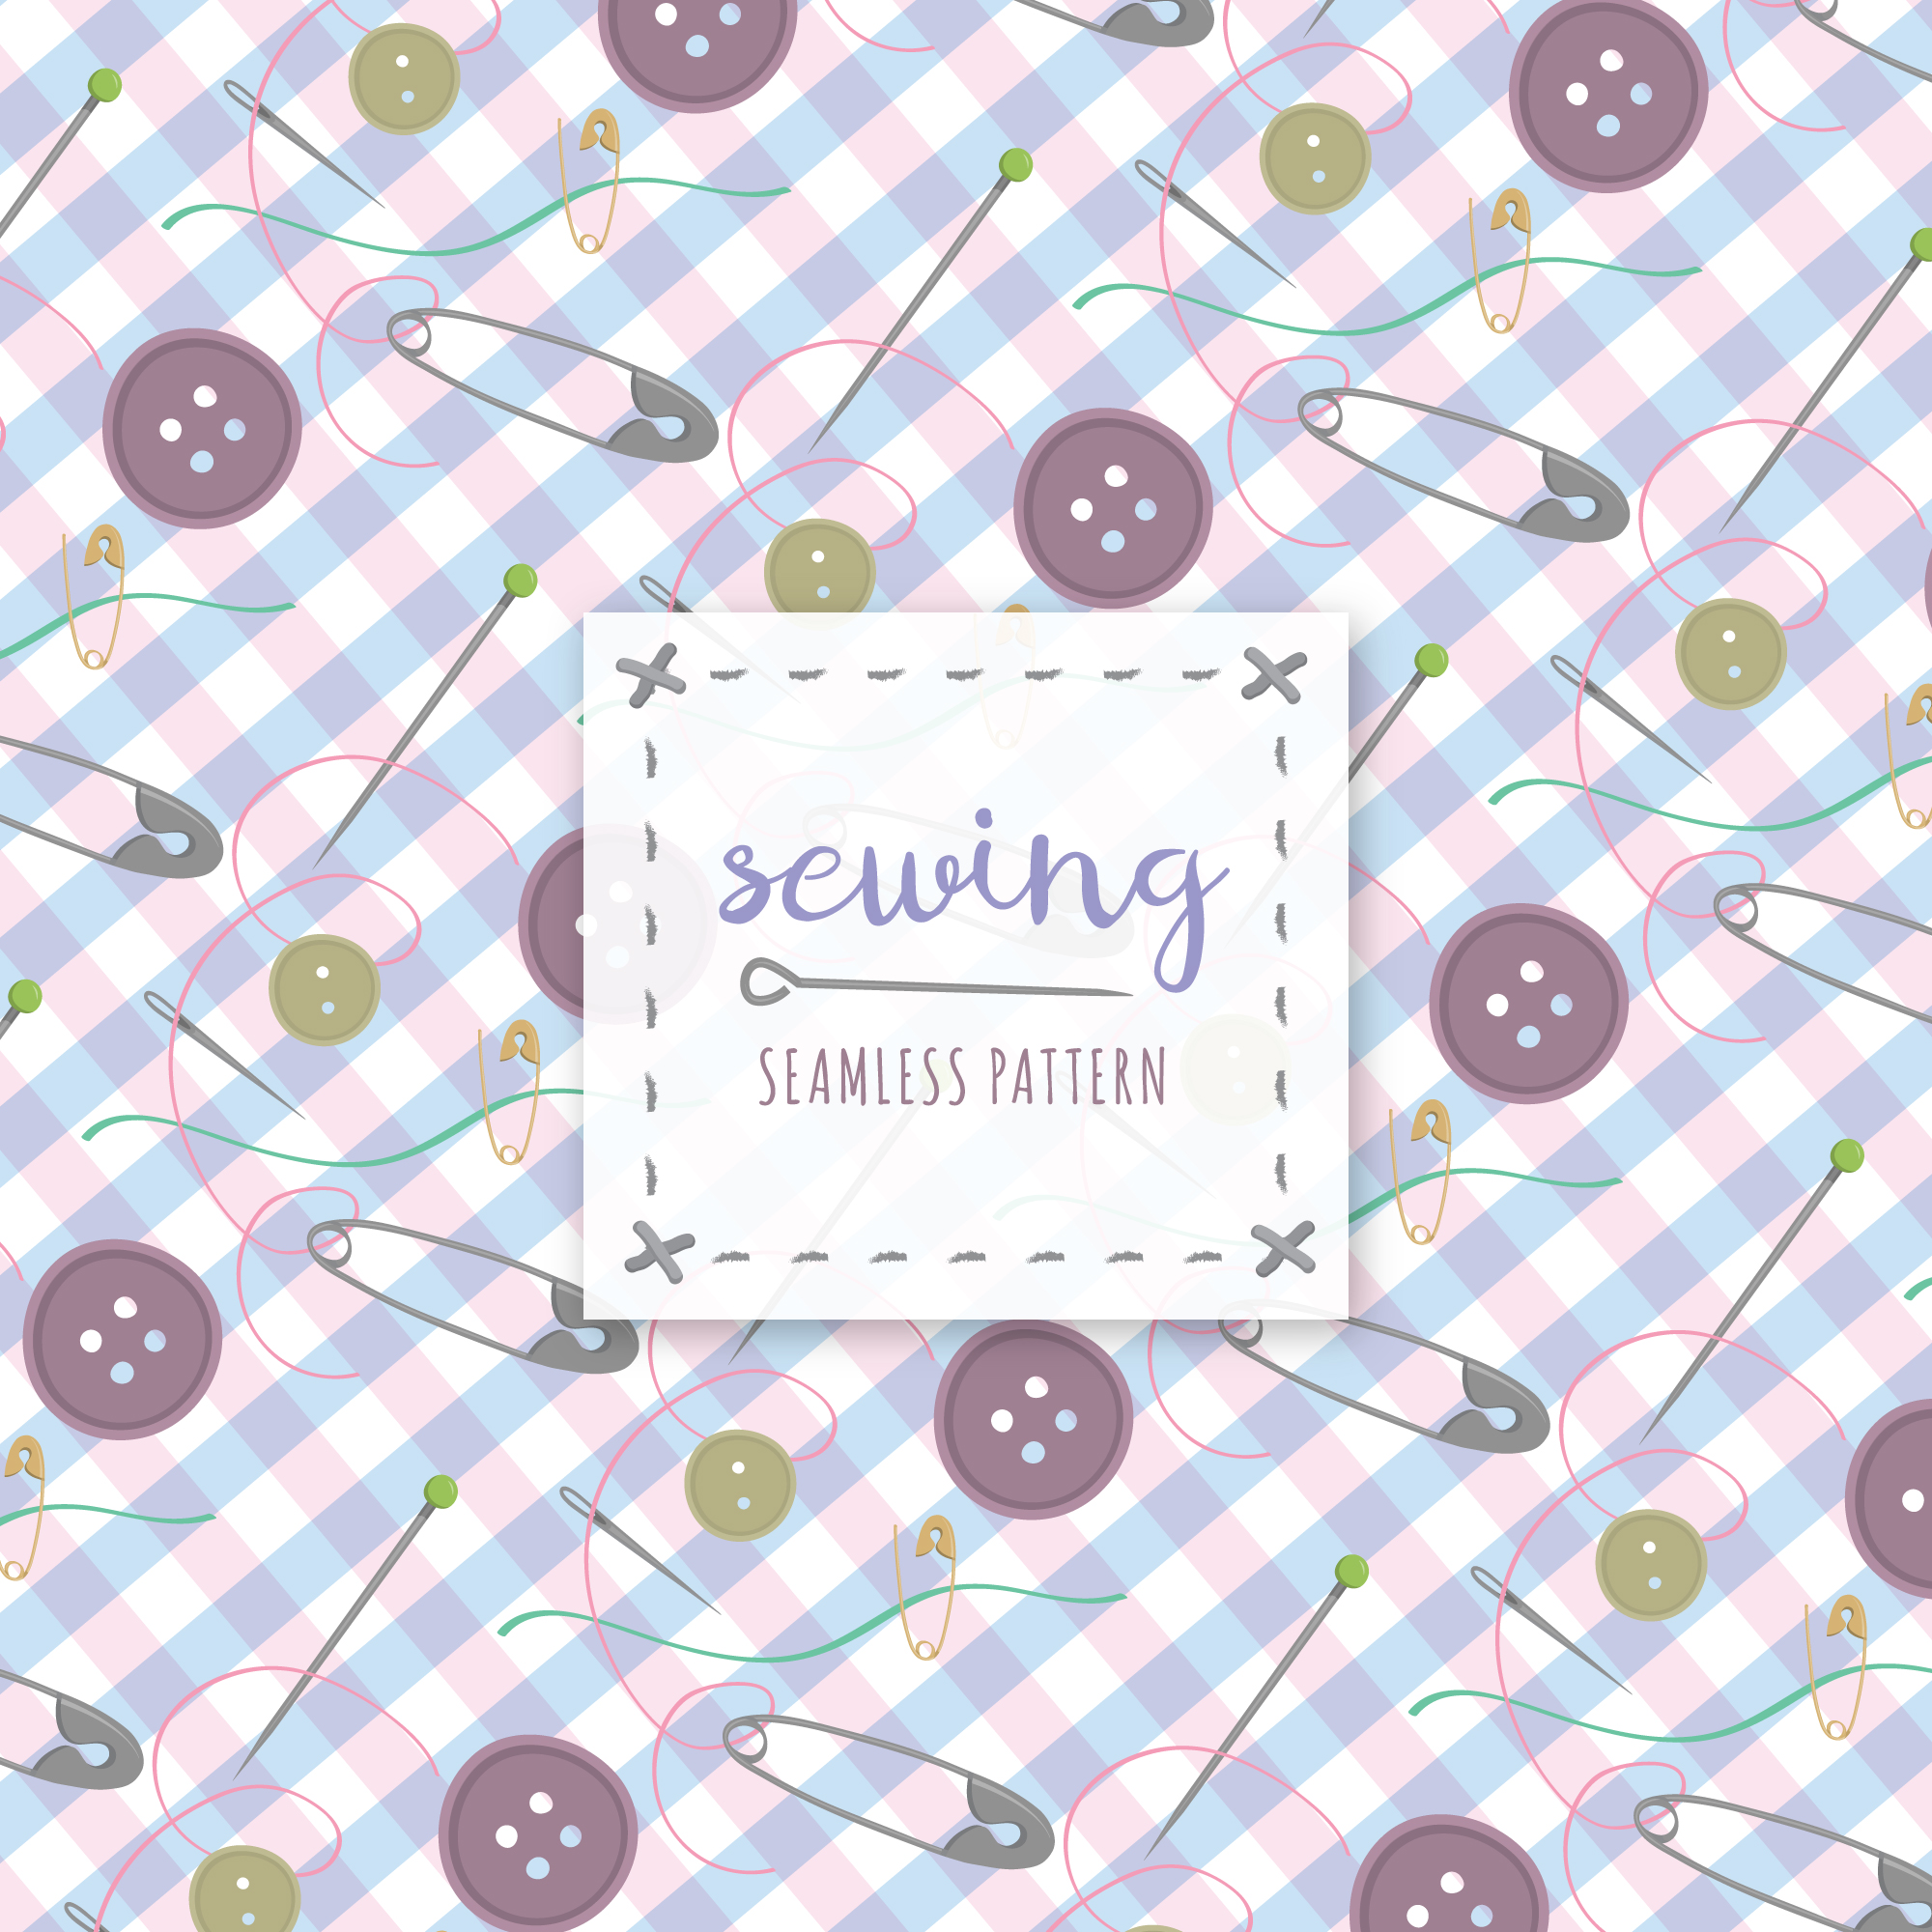 Sewing pattern background